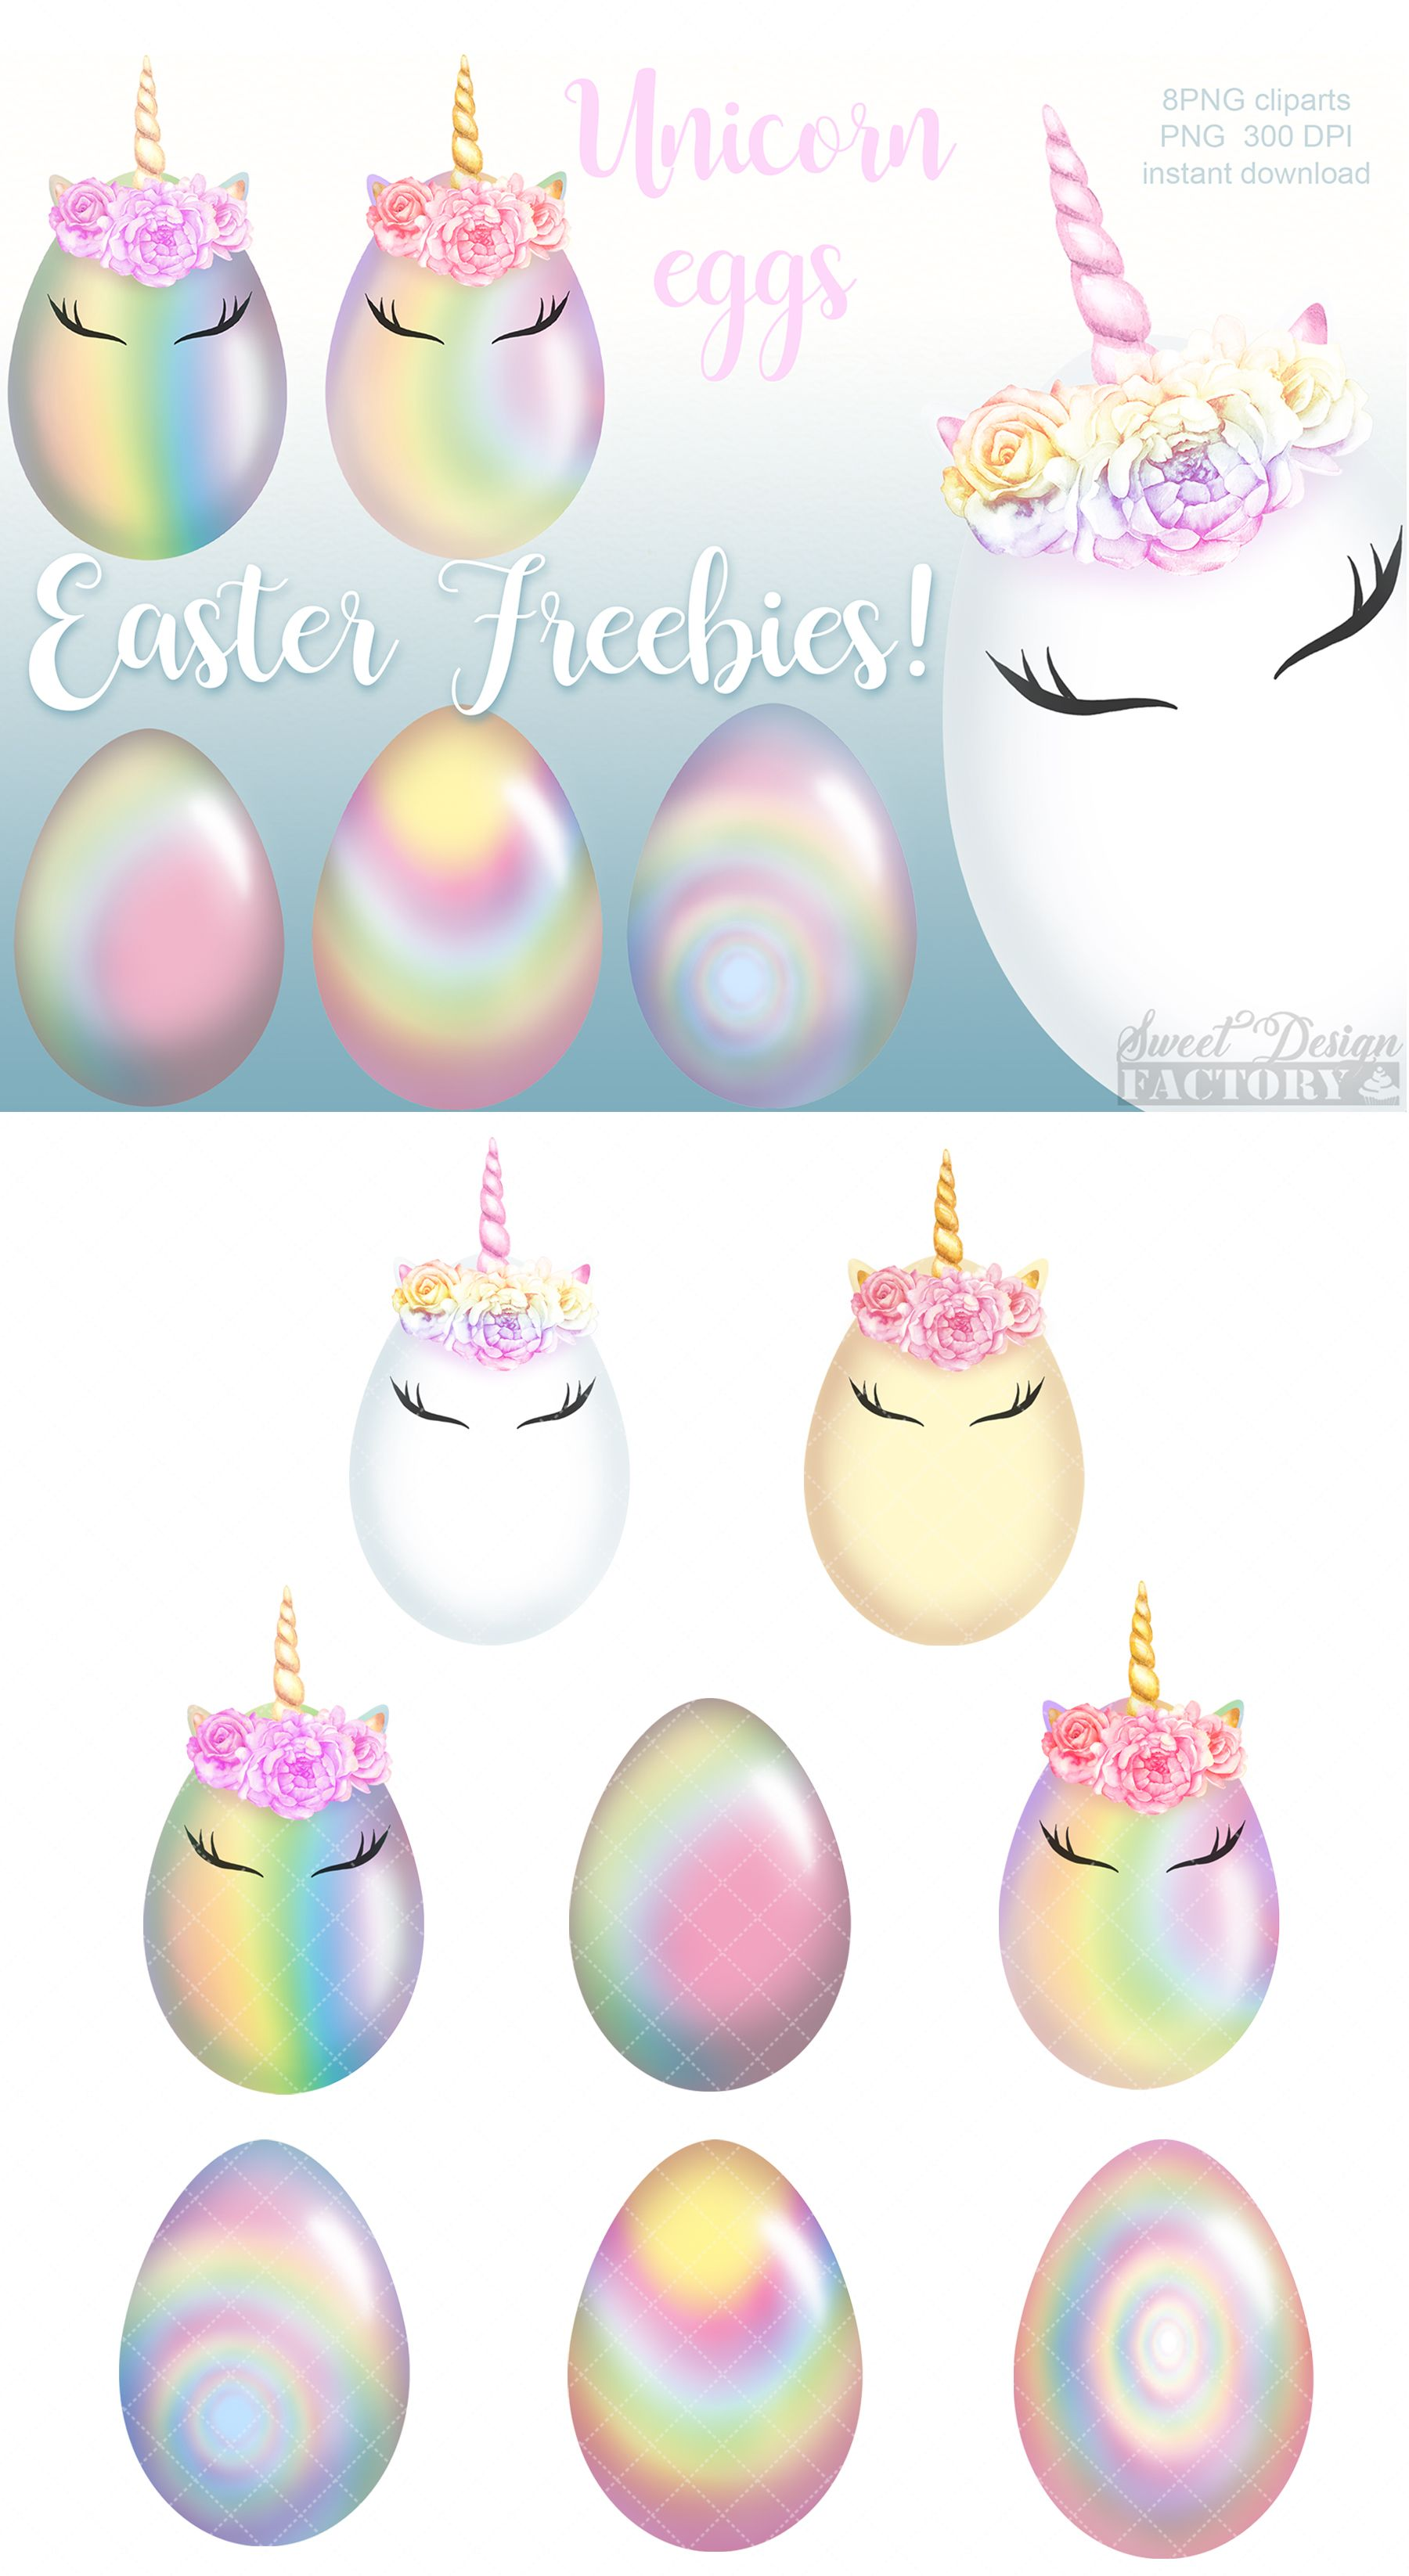 EASTER FREBBIES! 8 png files, easter eggs clipart, rainbow.